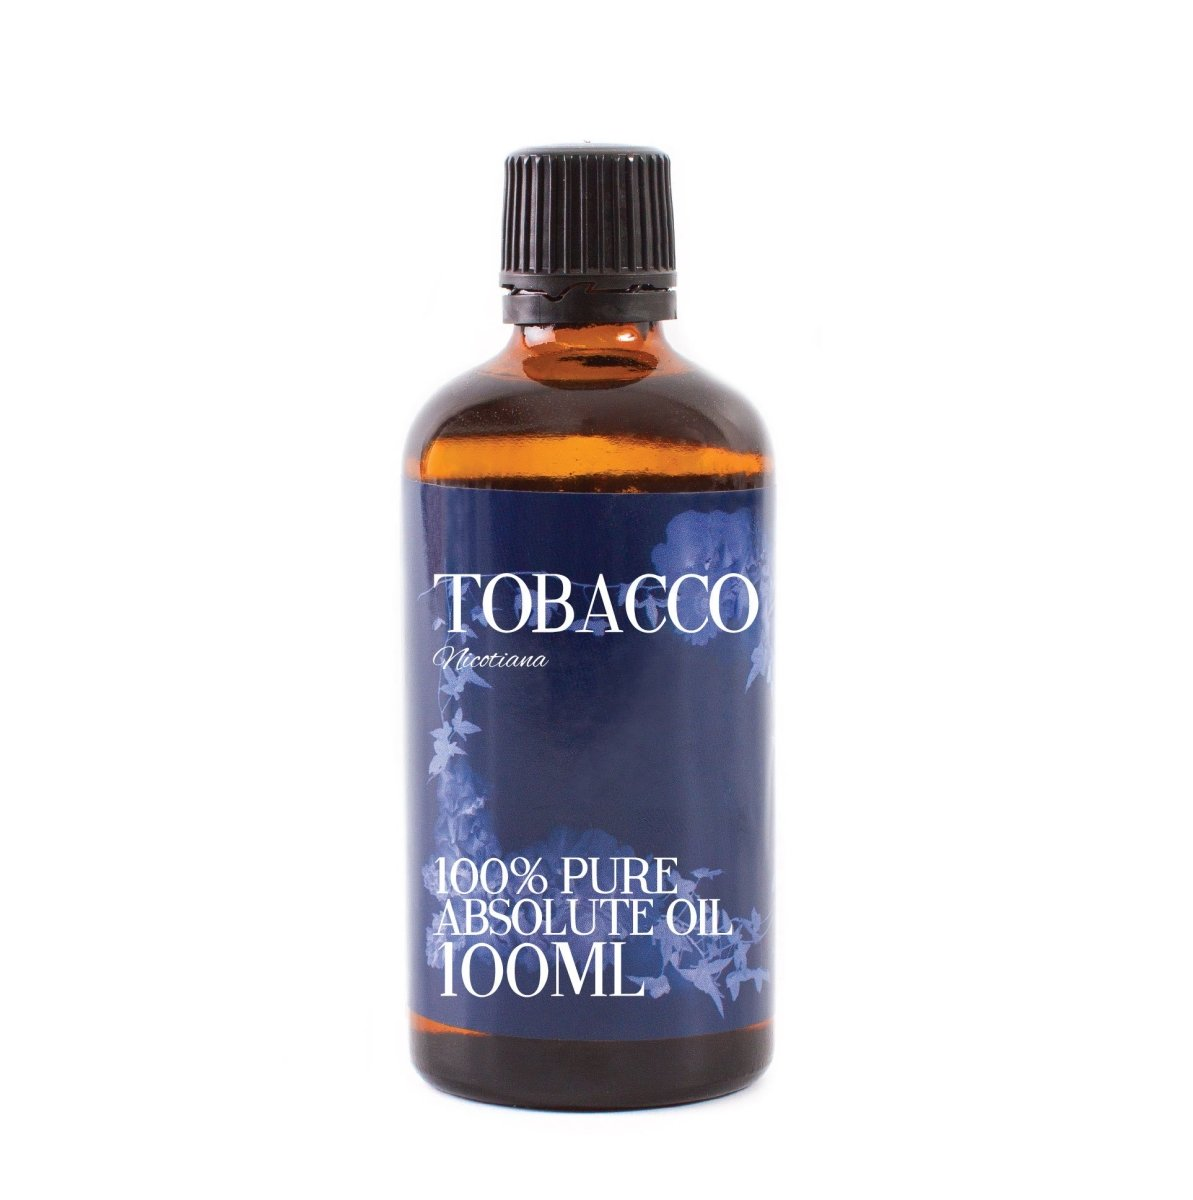 Tobacco - Absolute Oil - Mystic Moments UK